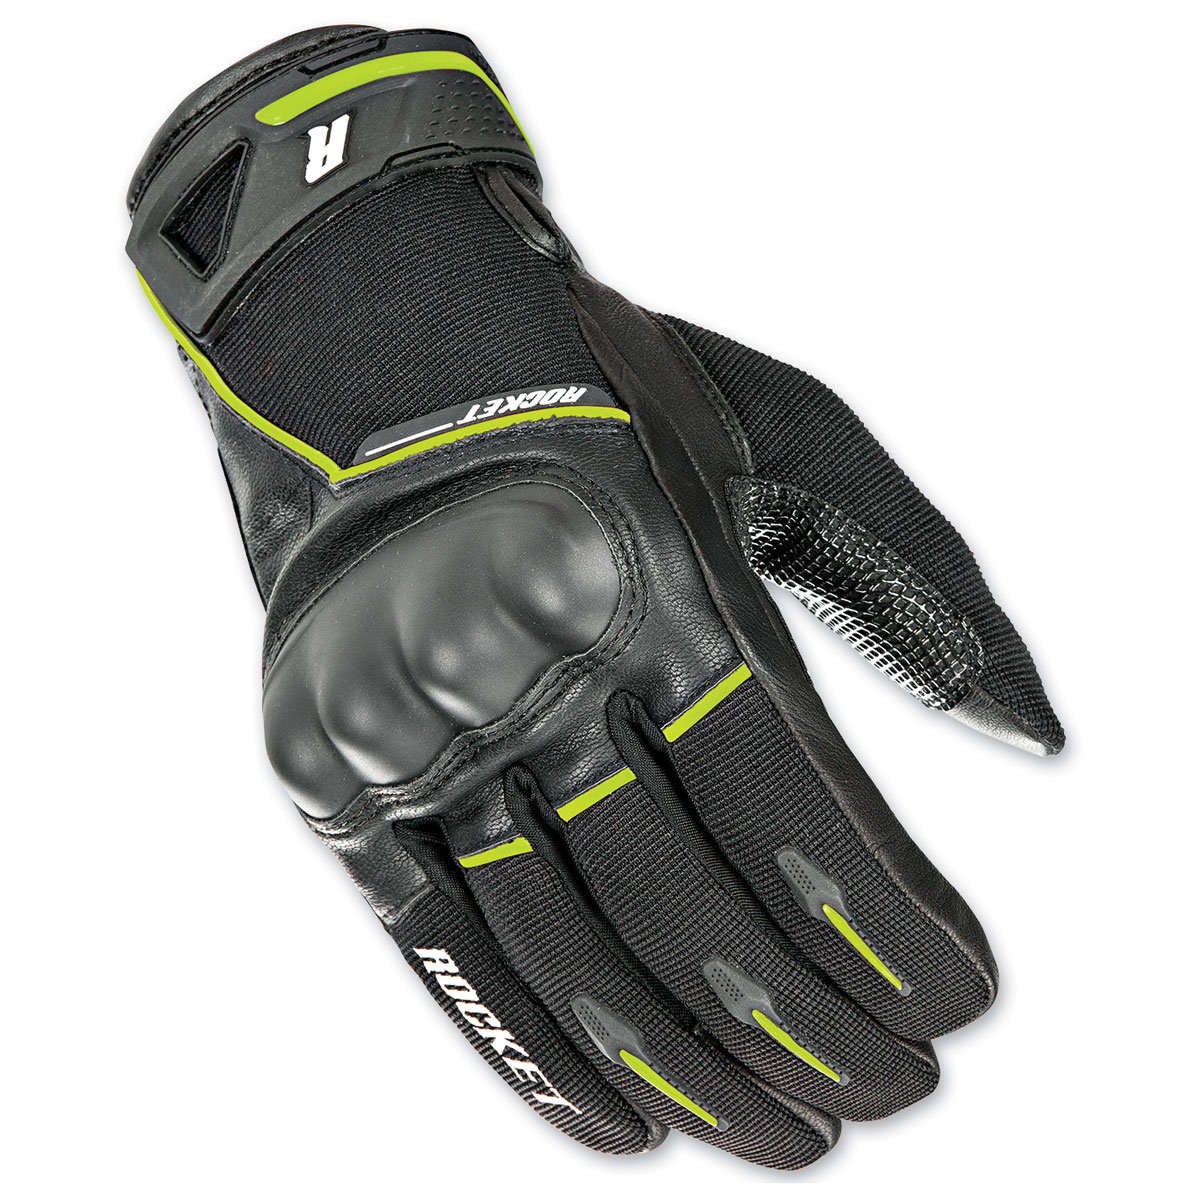 Joe Rocket Men's Super Moto Black/Hi-Viz Gloves